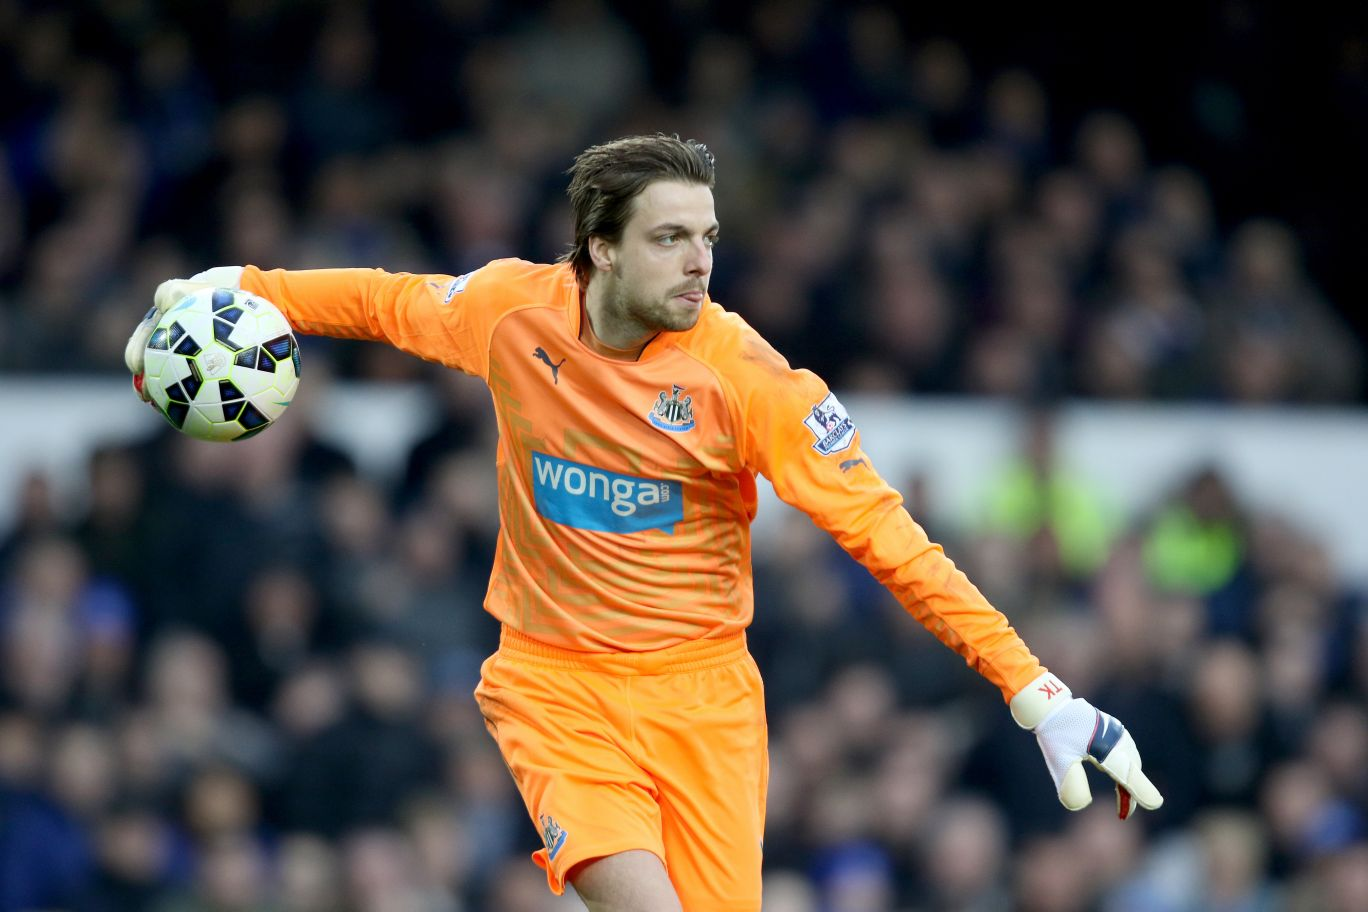 FILE PHOTO: Newcastle United goalkeeper Tim Krul has been ruled out for the rest of the season with a serious knee injury. Newcastle United's Tim Krul ... Soccer - Barclays Premier League - Everton v Newcastle United - Goodison Park ... 15-03-2015 ... Liverpool ... England ... Photo credit should read: Richard Sellers/EMPICS Sport. Unique Reference No. 22503910 ...